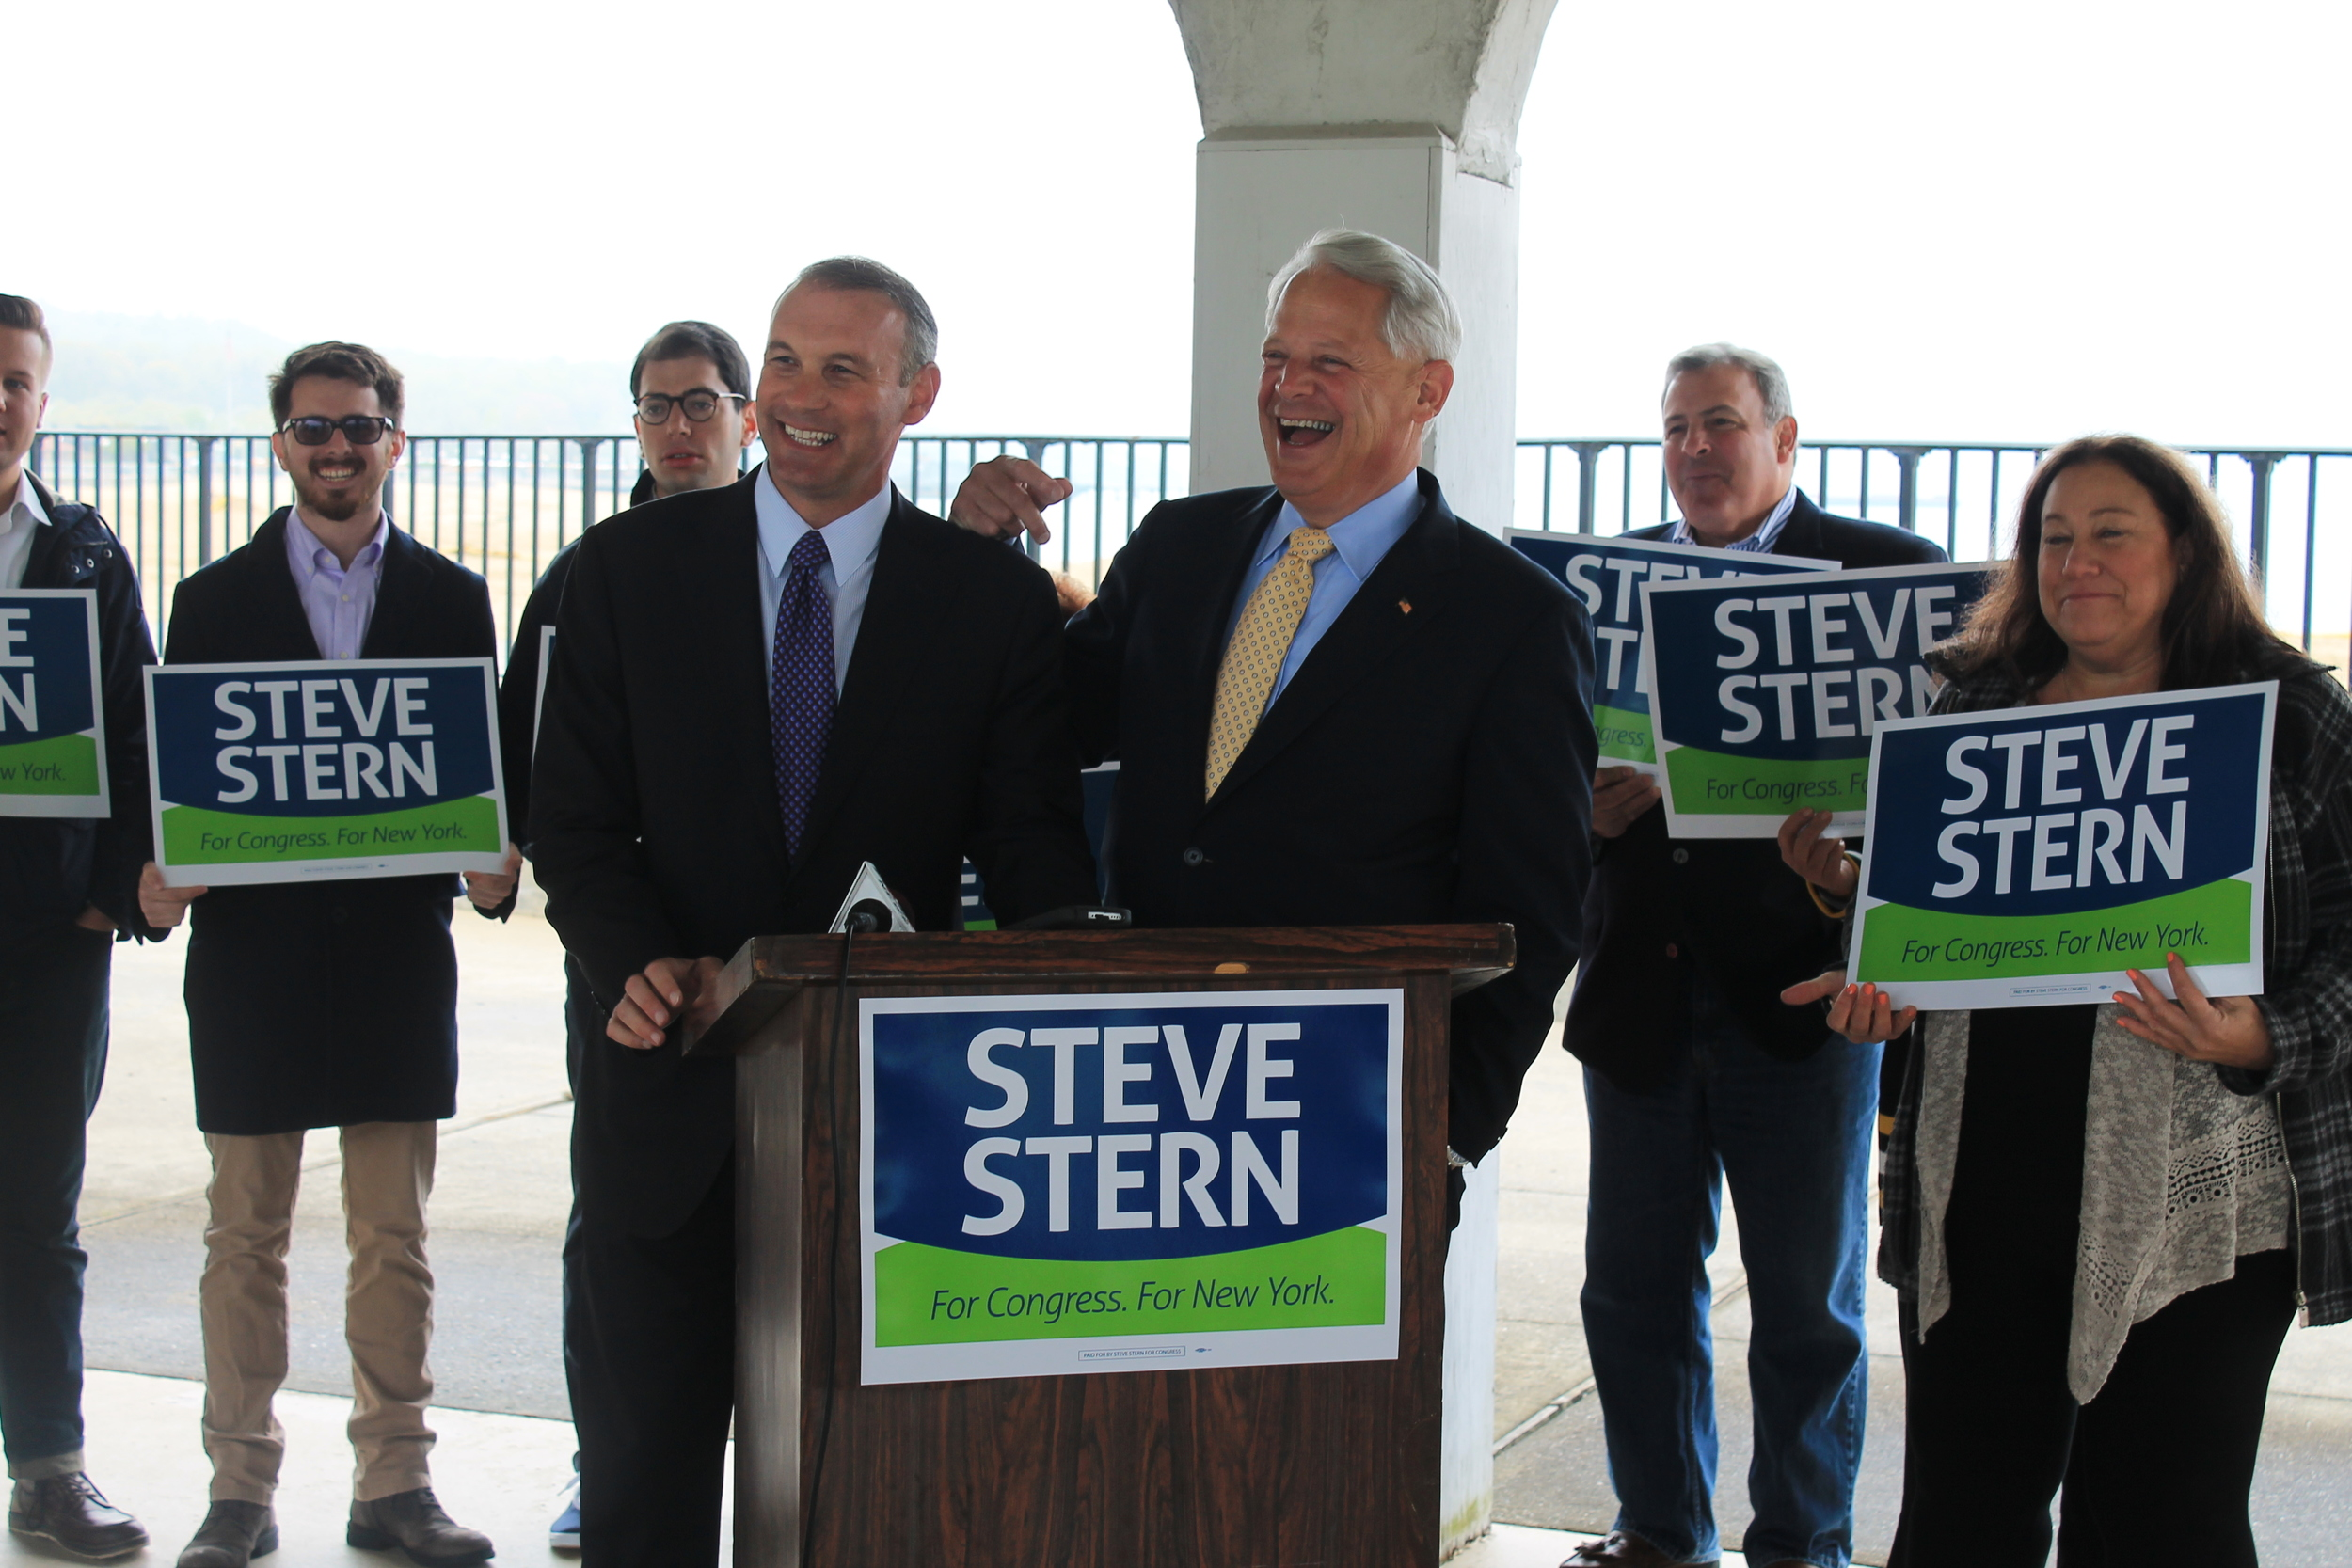 Congressman Steve Israel (D-Huntington), right, last week backed Suffolk County Legislator Steve Stern (D-Dix Hills), left, in his quest to fill the Third District seat.